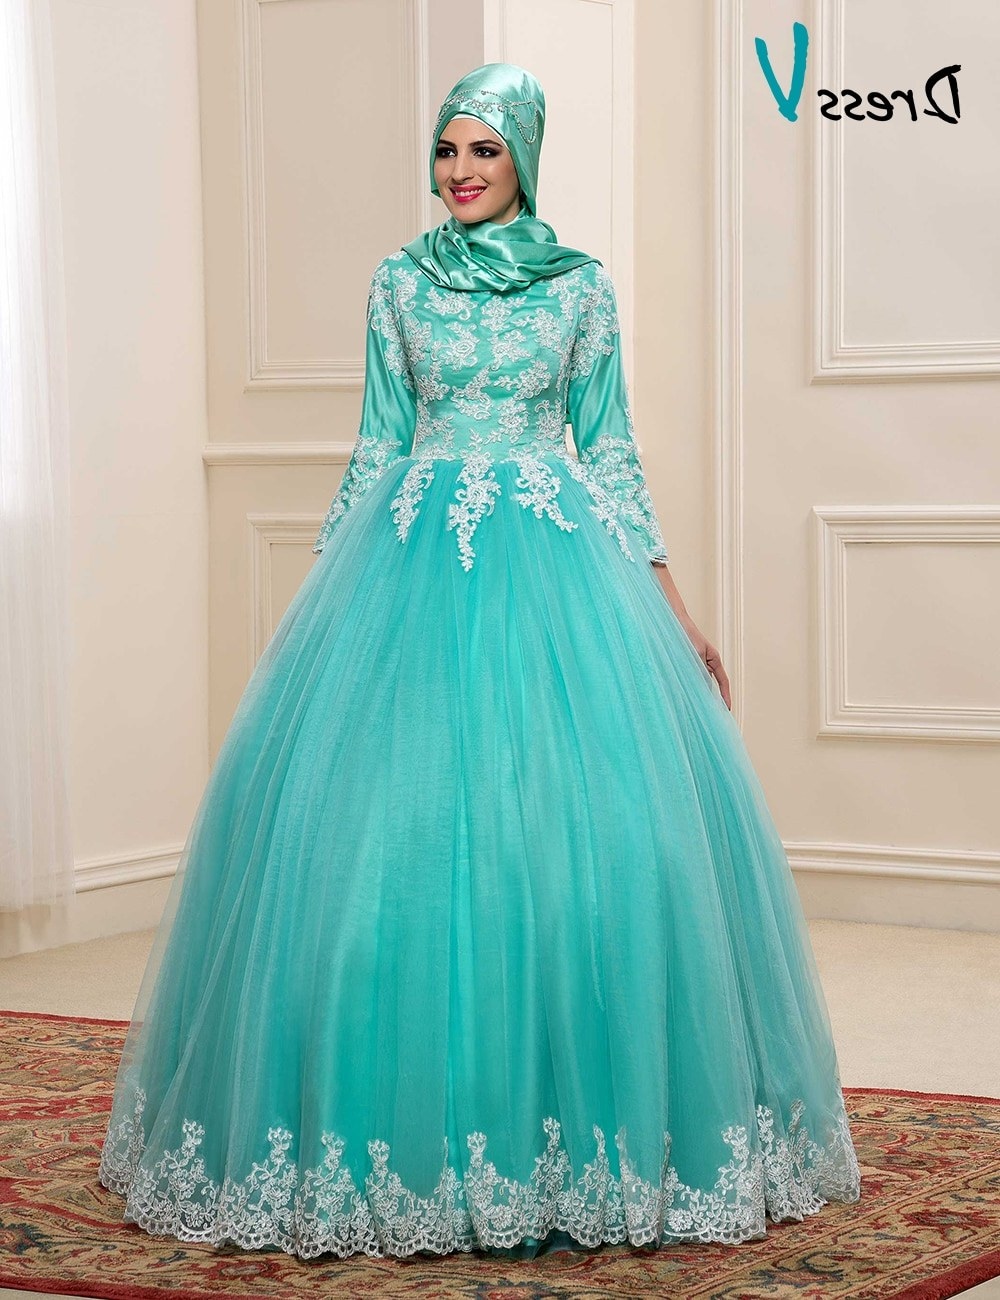 Model Inspirasi Baju Pengantin Muslimah Zwdg islamic Hijab Wedding Dresses – Fashion Dresses